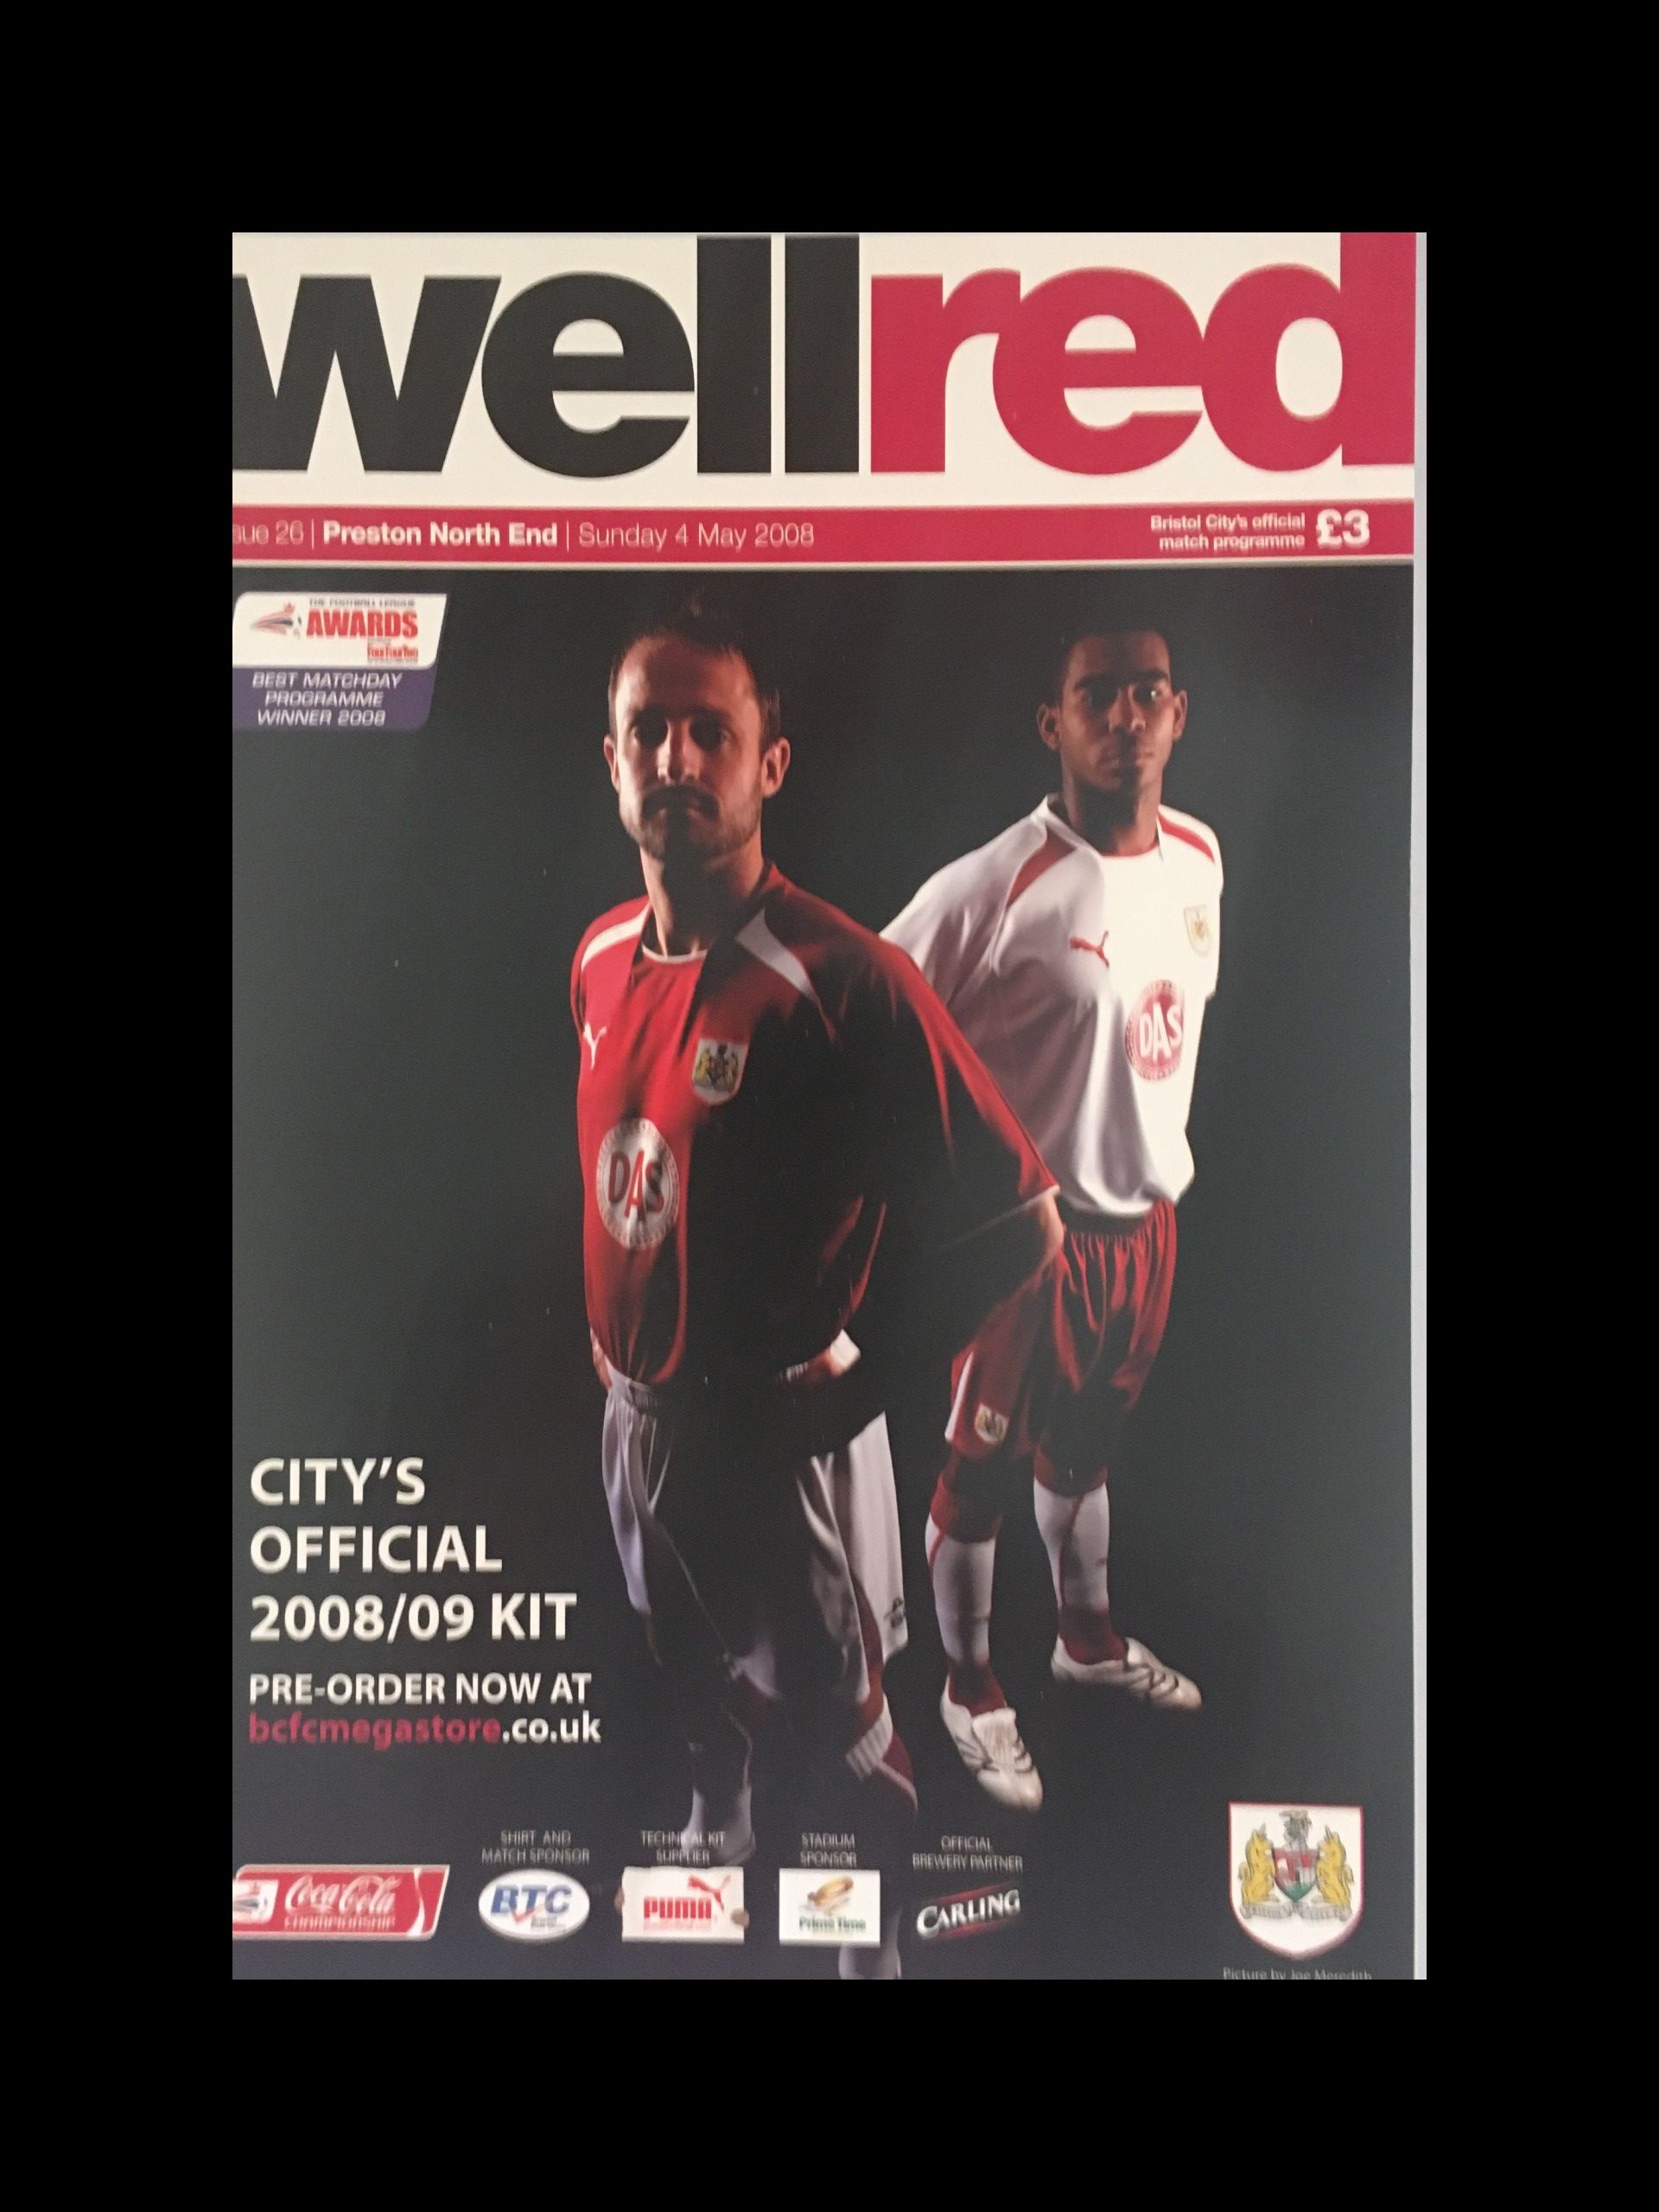 Bristol City v Preston North End 04-05-2008 Programme